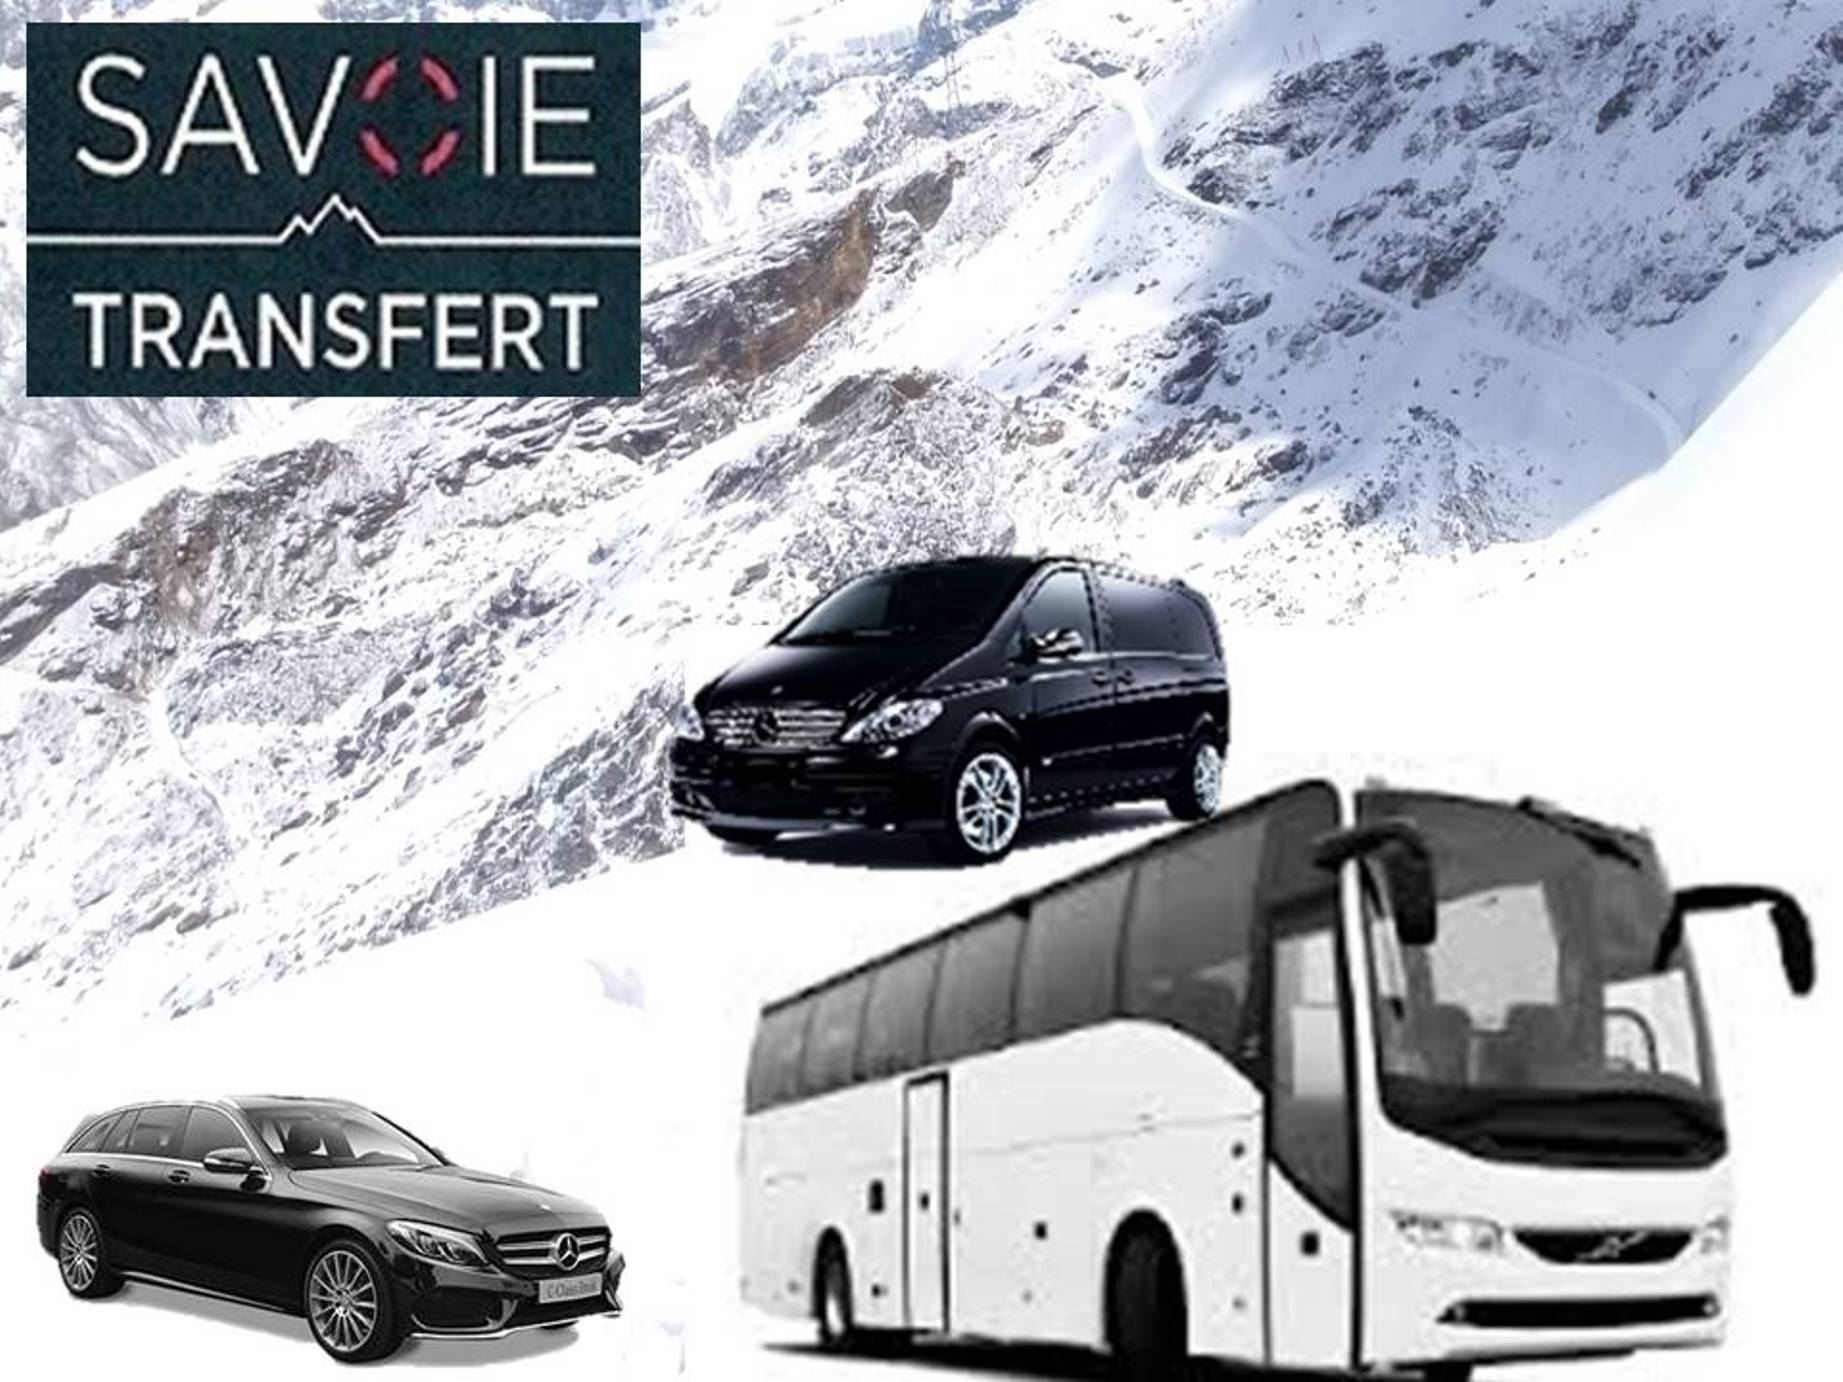 PRIVATE TRANSFER from GRENOBLE AIRPORT with VAL THORENS TRANSFERT